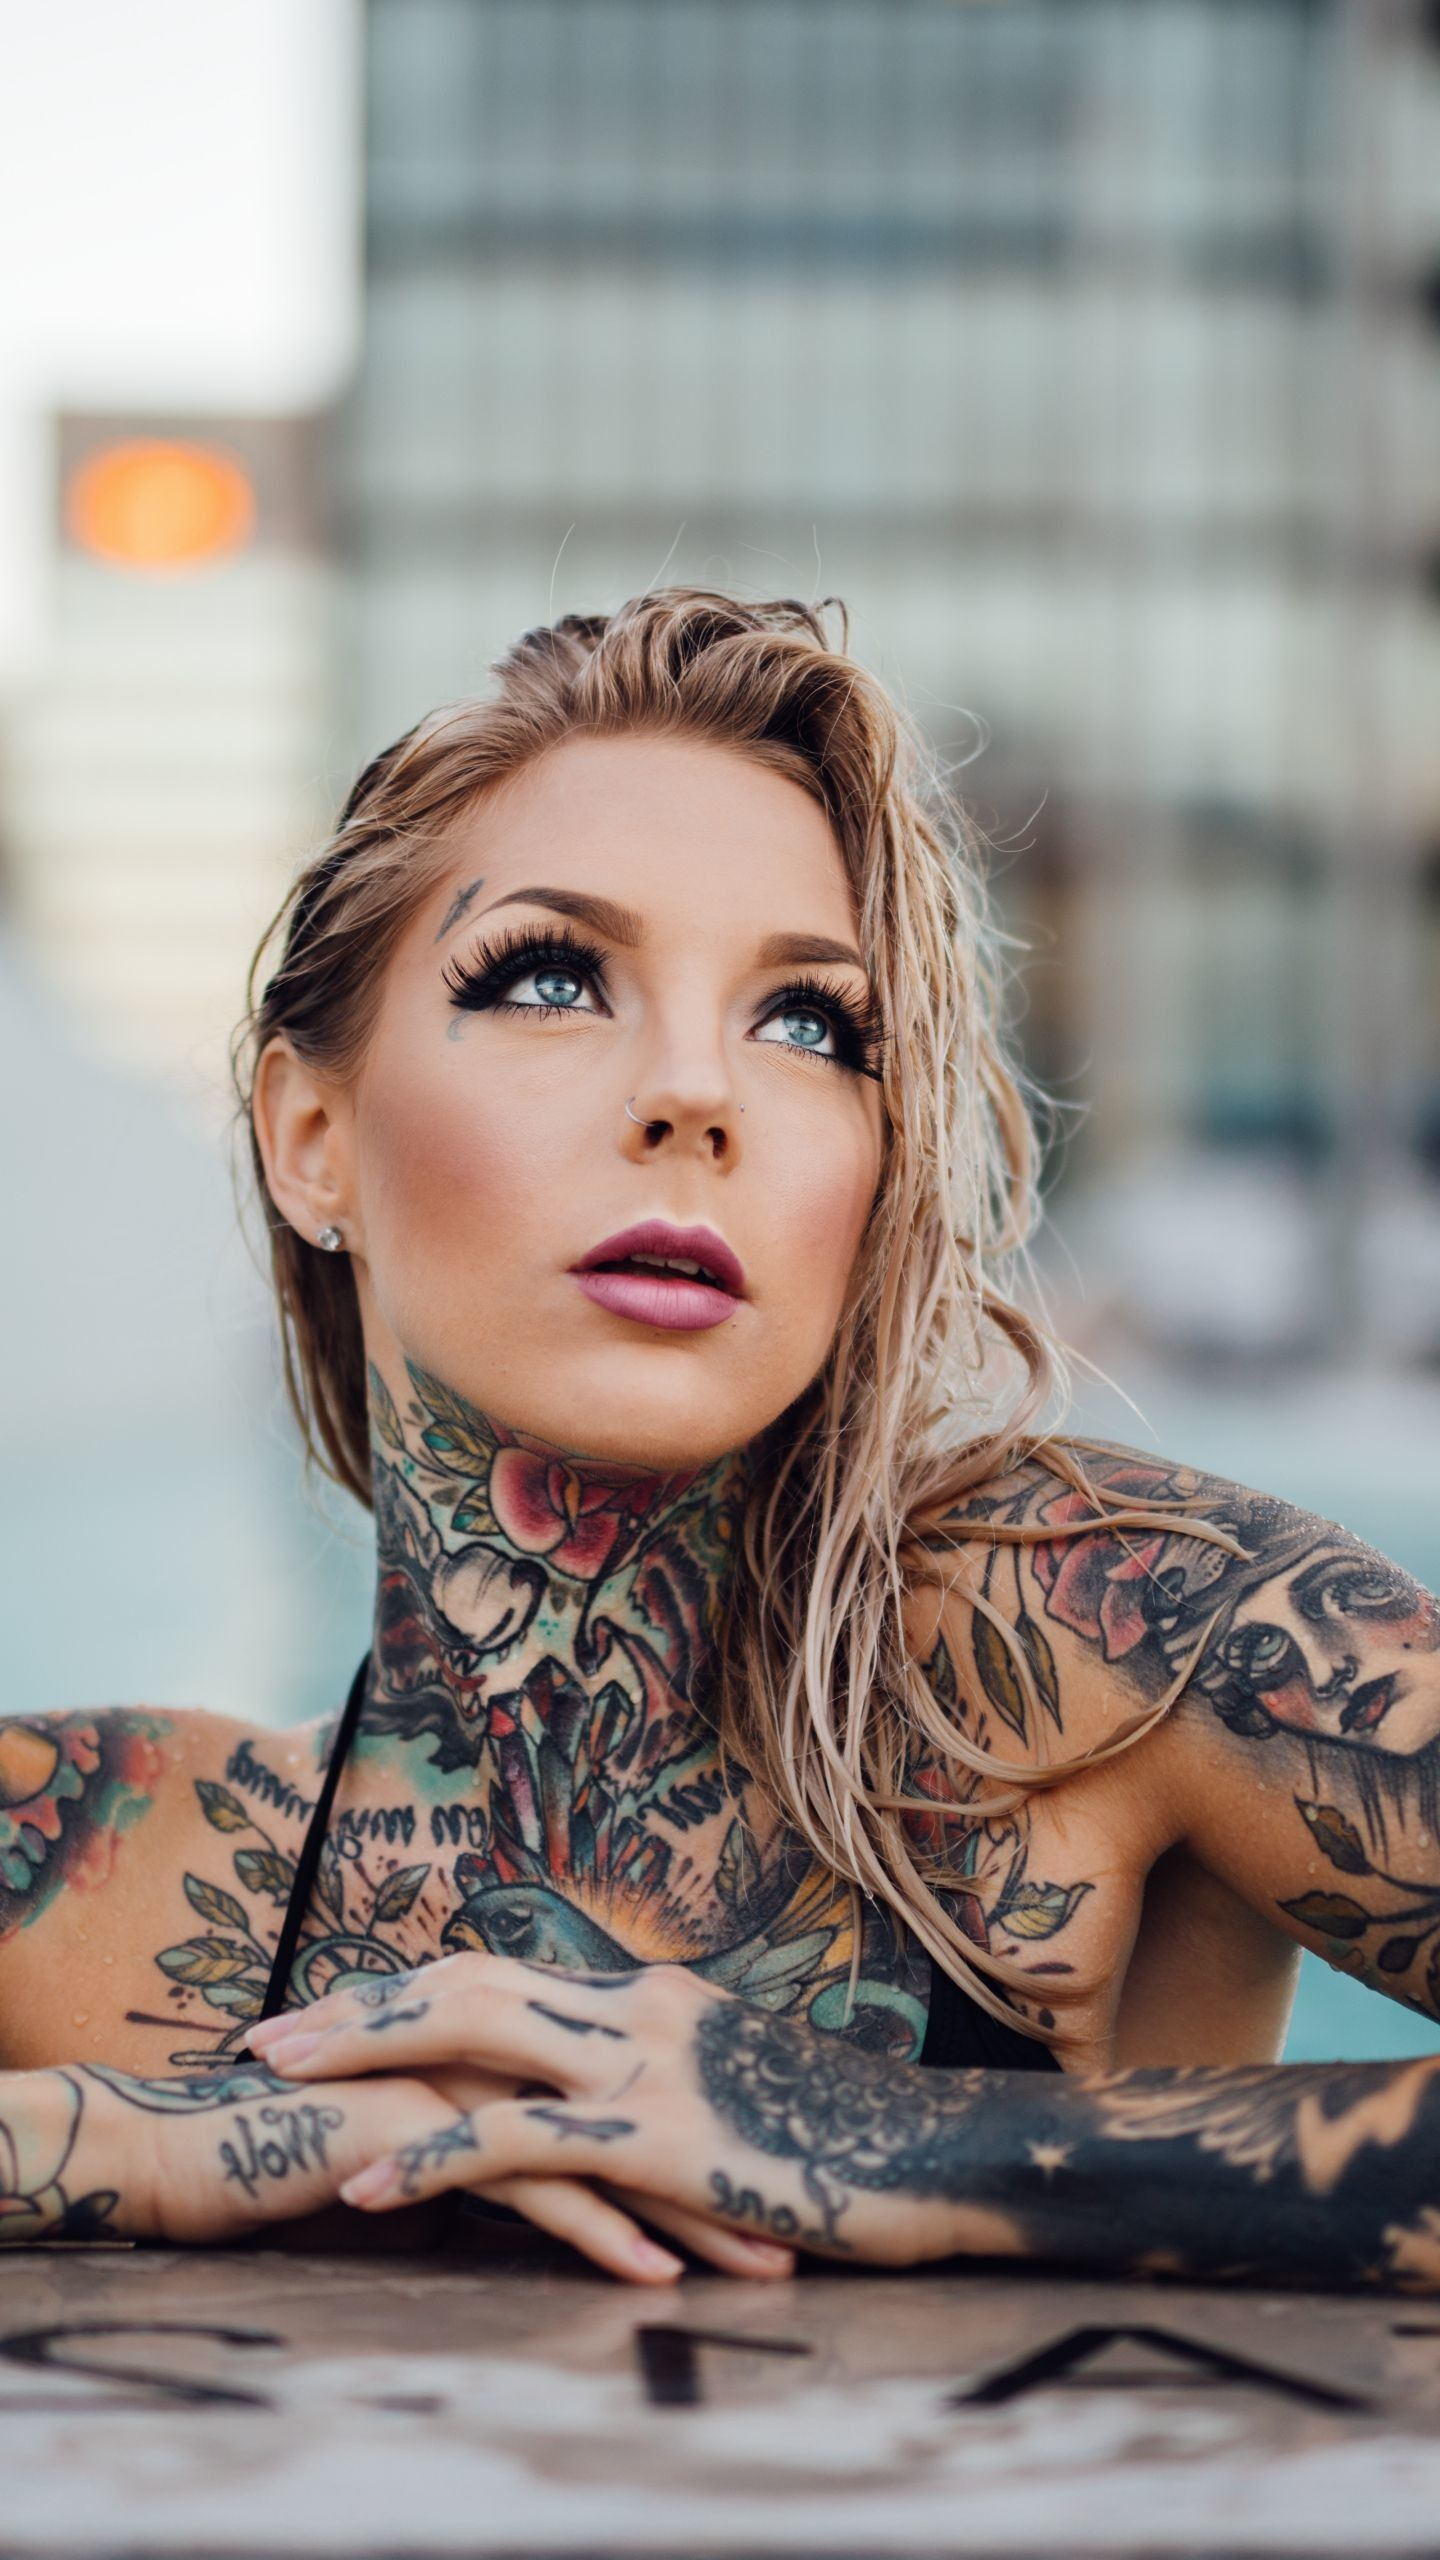 59+ Inked Girls Wallpapers on WallpaperPlay | Girl tattoos